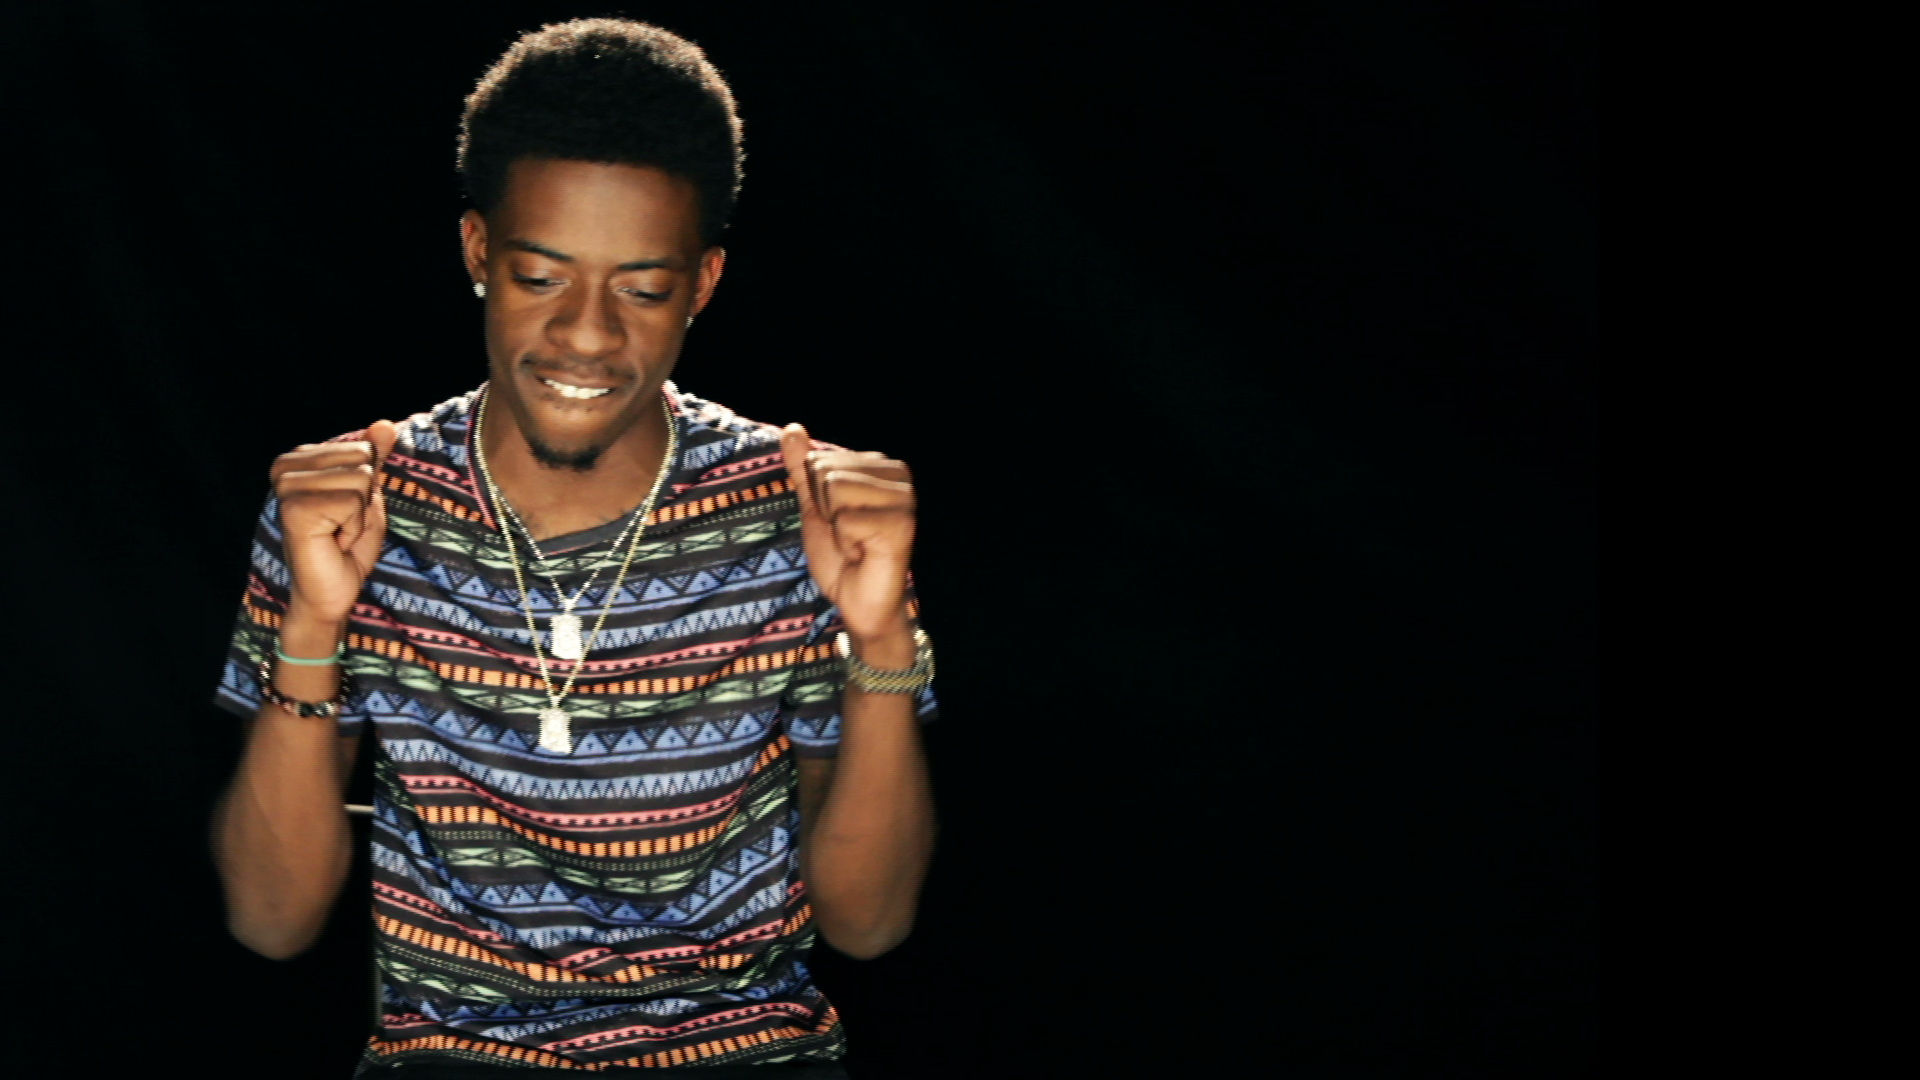 Mn13 Richhomiequan Koby Final